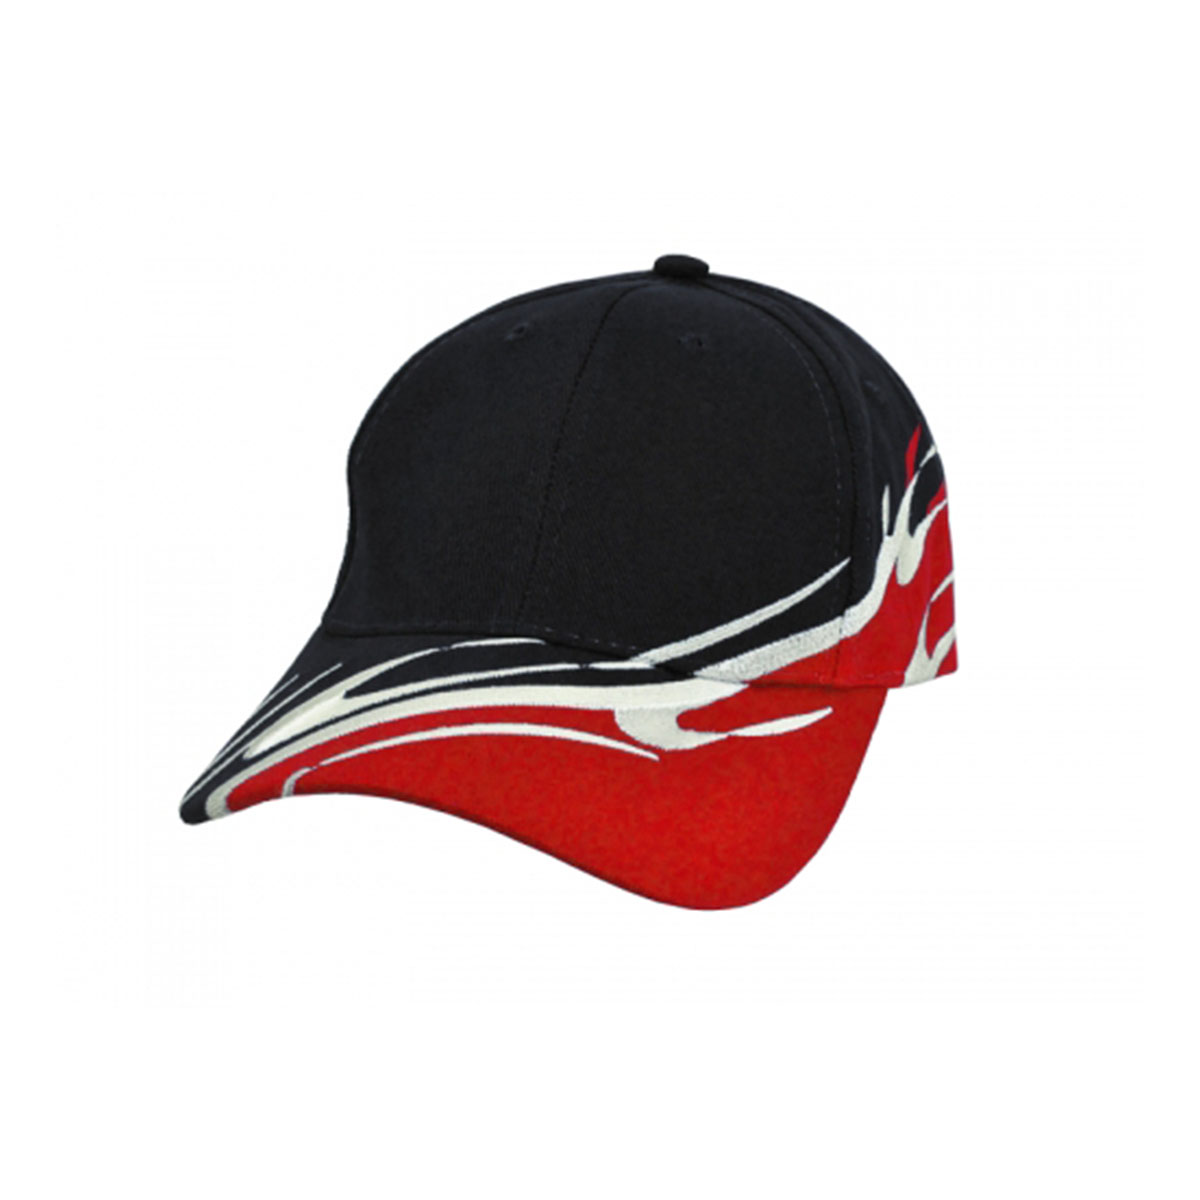 Wave Cap-Black / White / Red